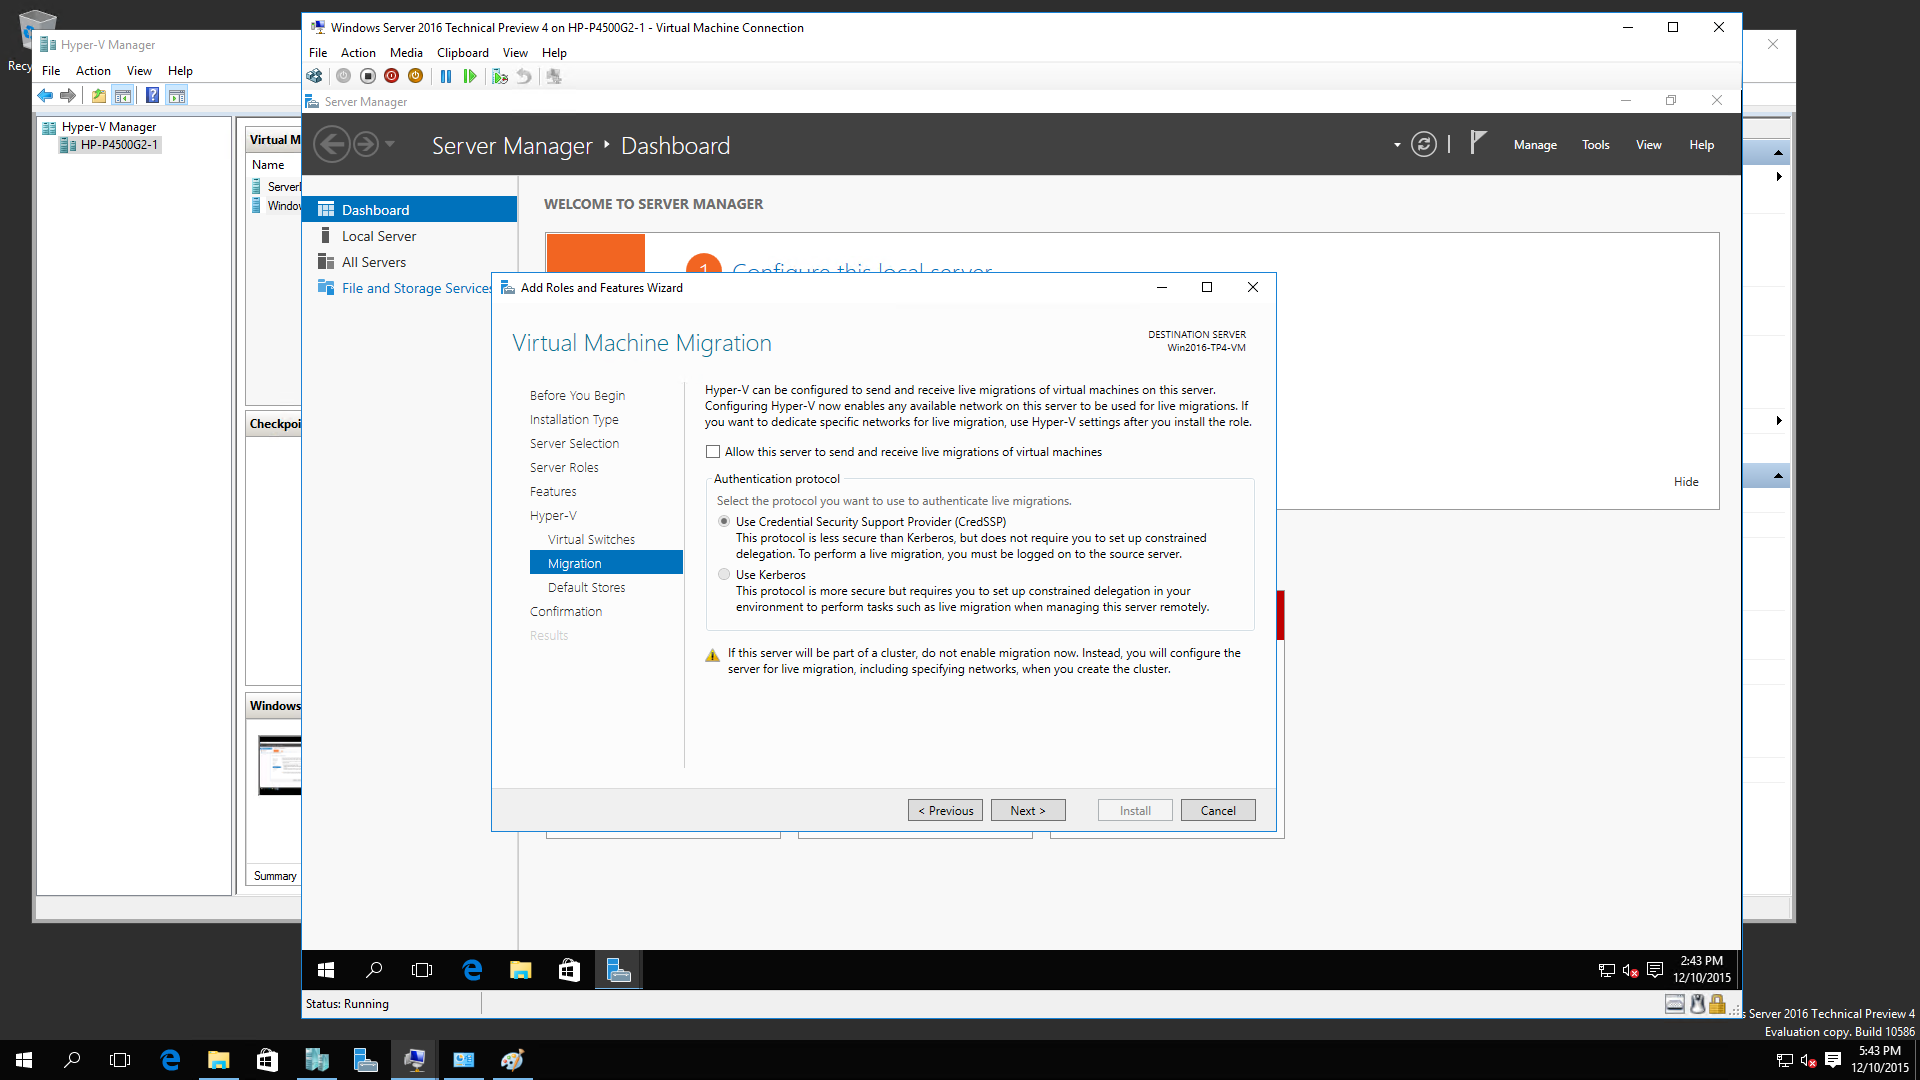 Windows 2016 R2 TP4 Nested Virtualization 8